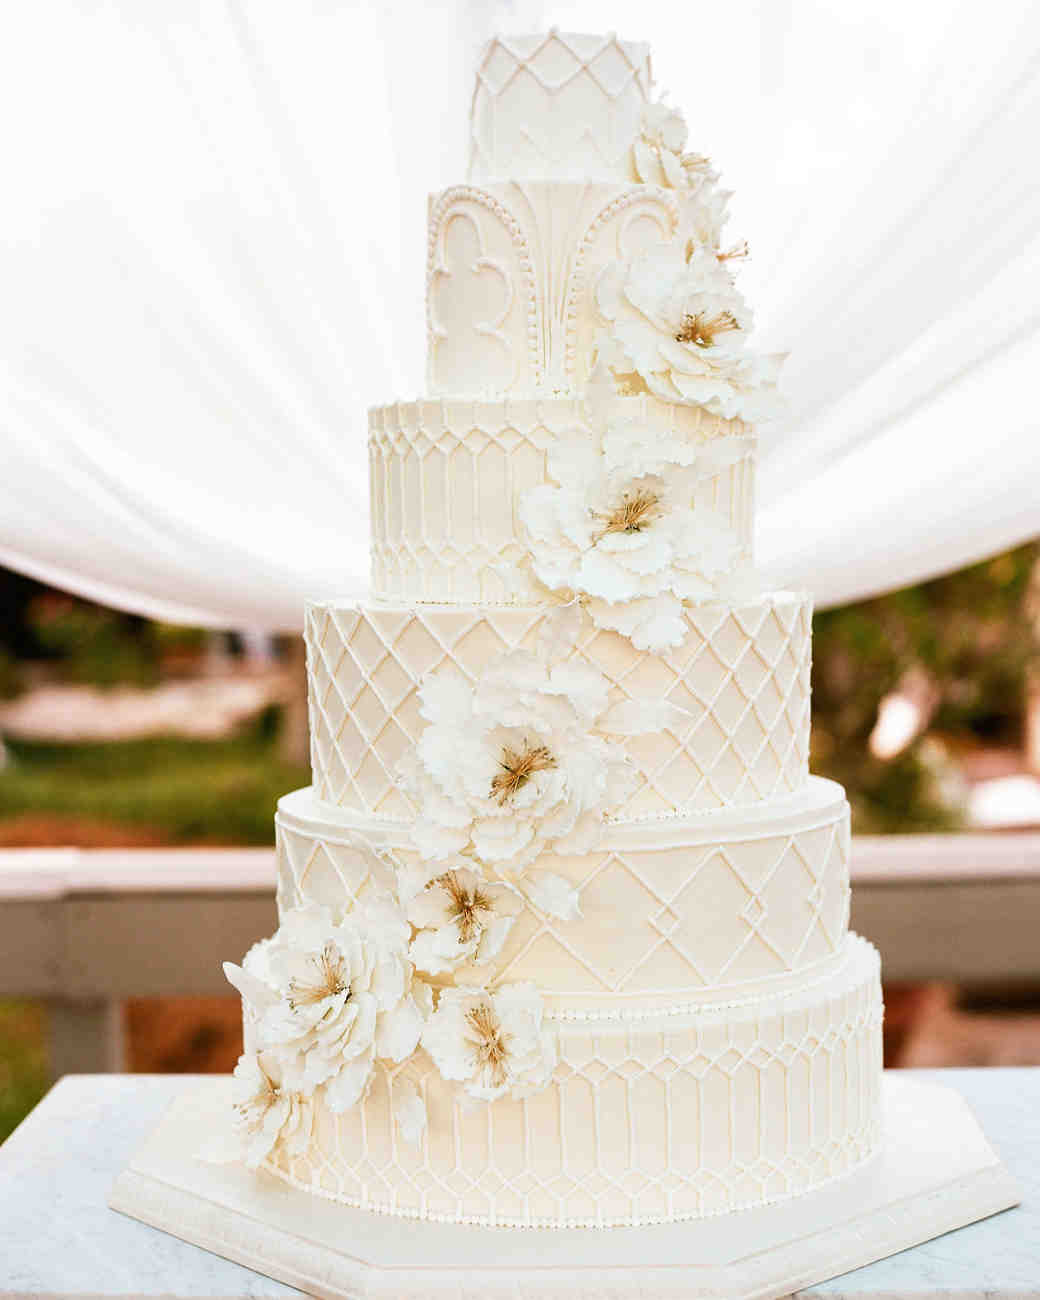 Pictures Of Elegant Wedding Cakes